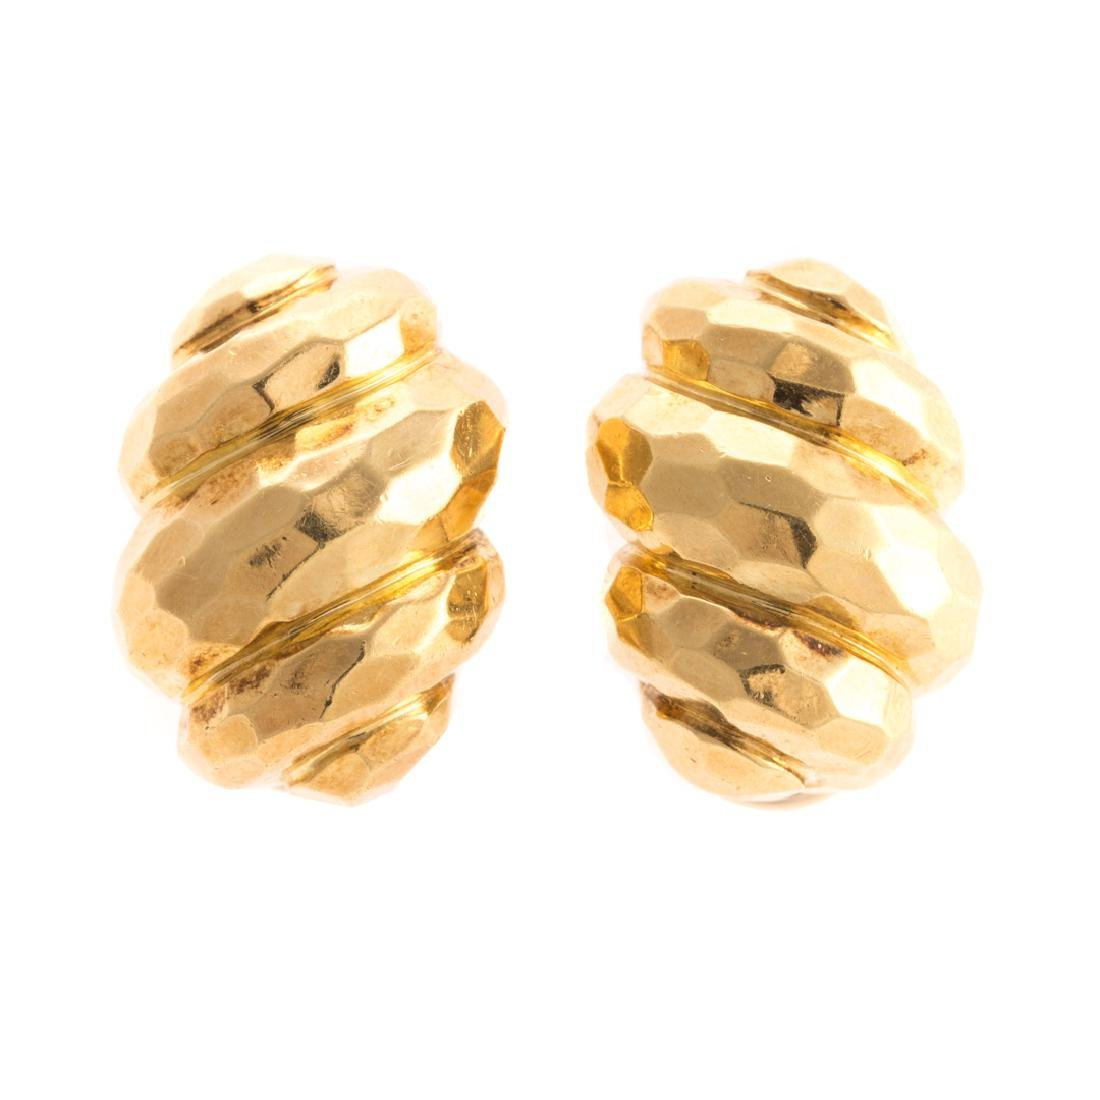 A Pair of Lady's 18K Henry Dunay Clip Earrings